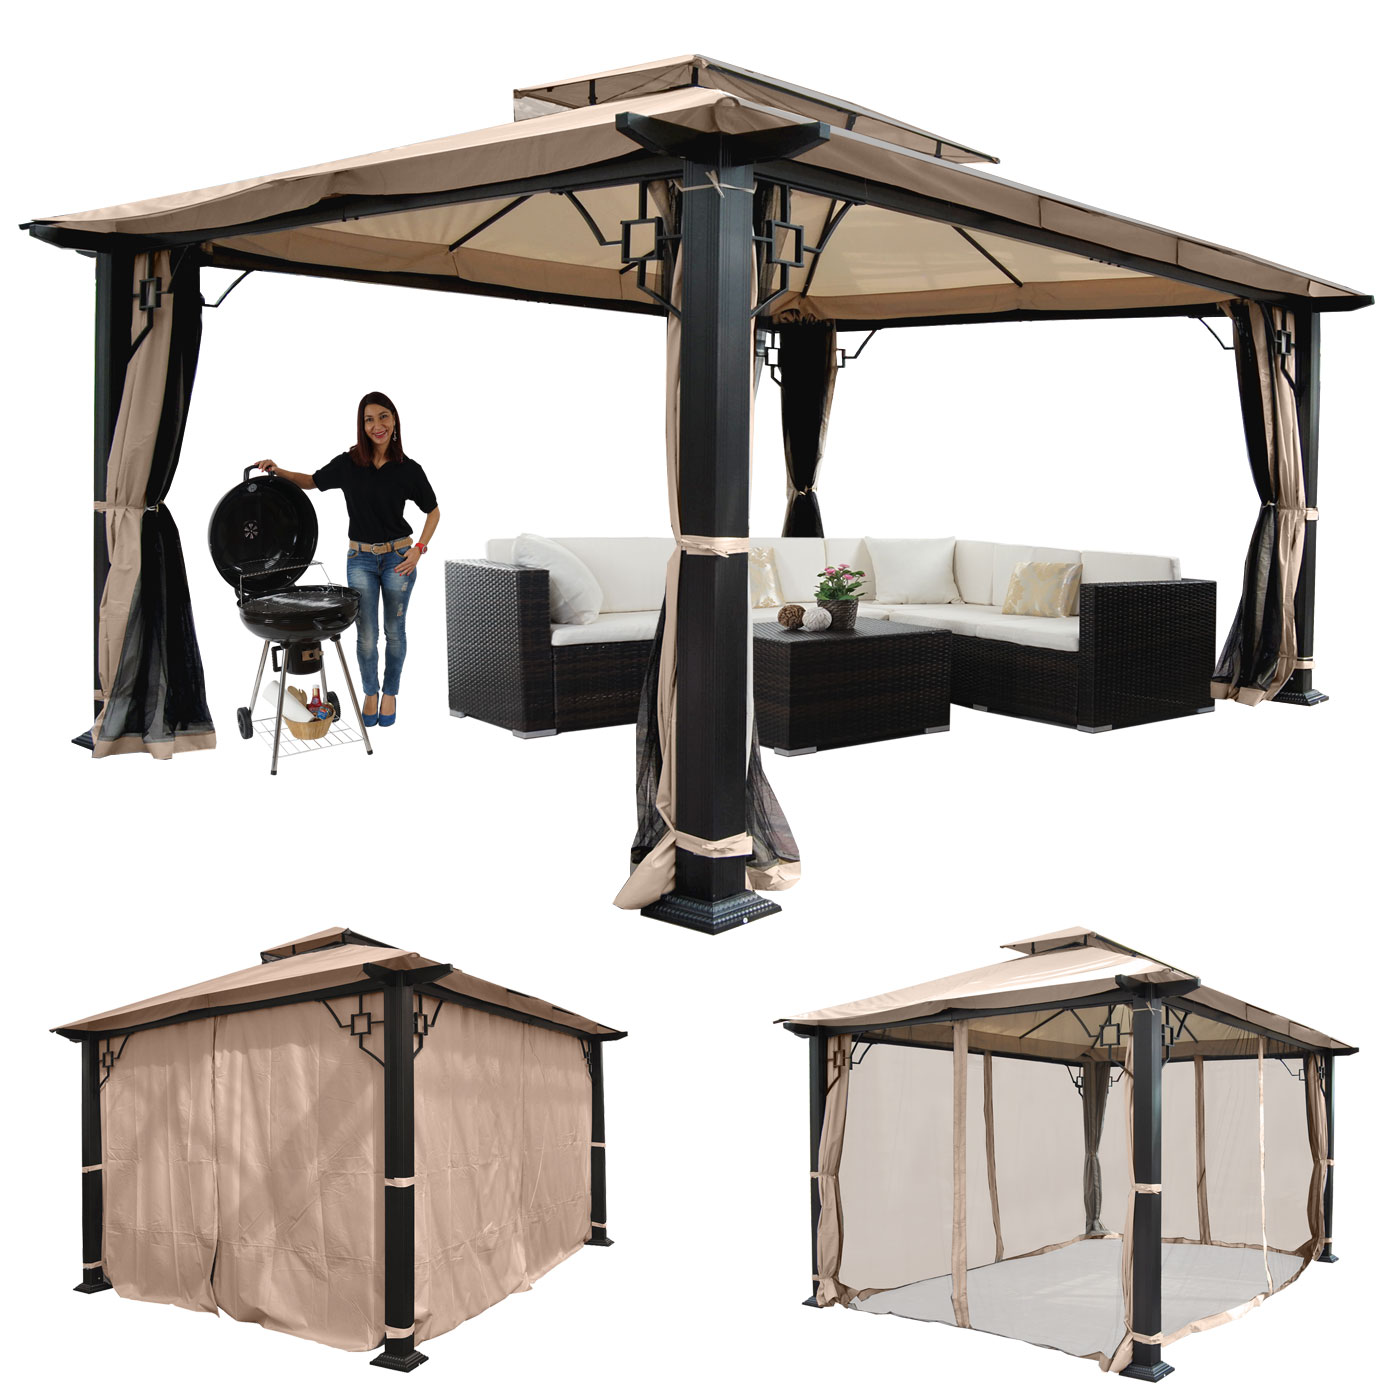 pergola mira garten pavillon 12cm luxus alu gestell mit seitenwand moskitonetz 4 5x3 5m. Black Bedroom Furniture Sets. Home Design Ideas